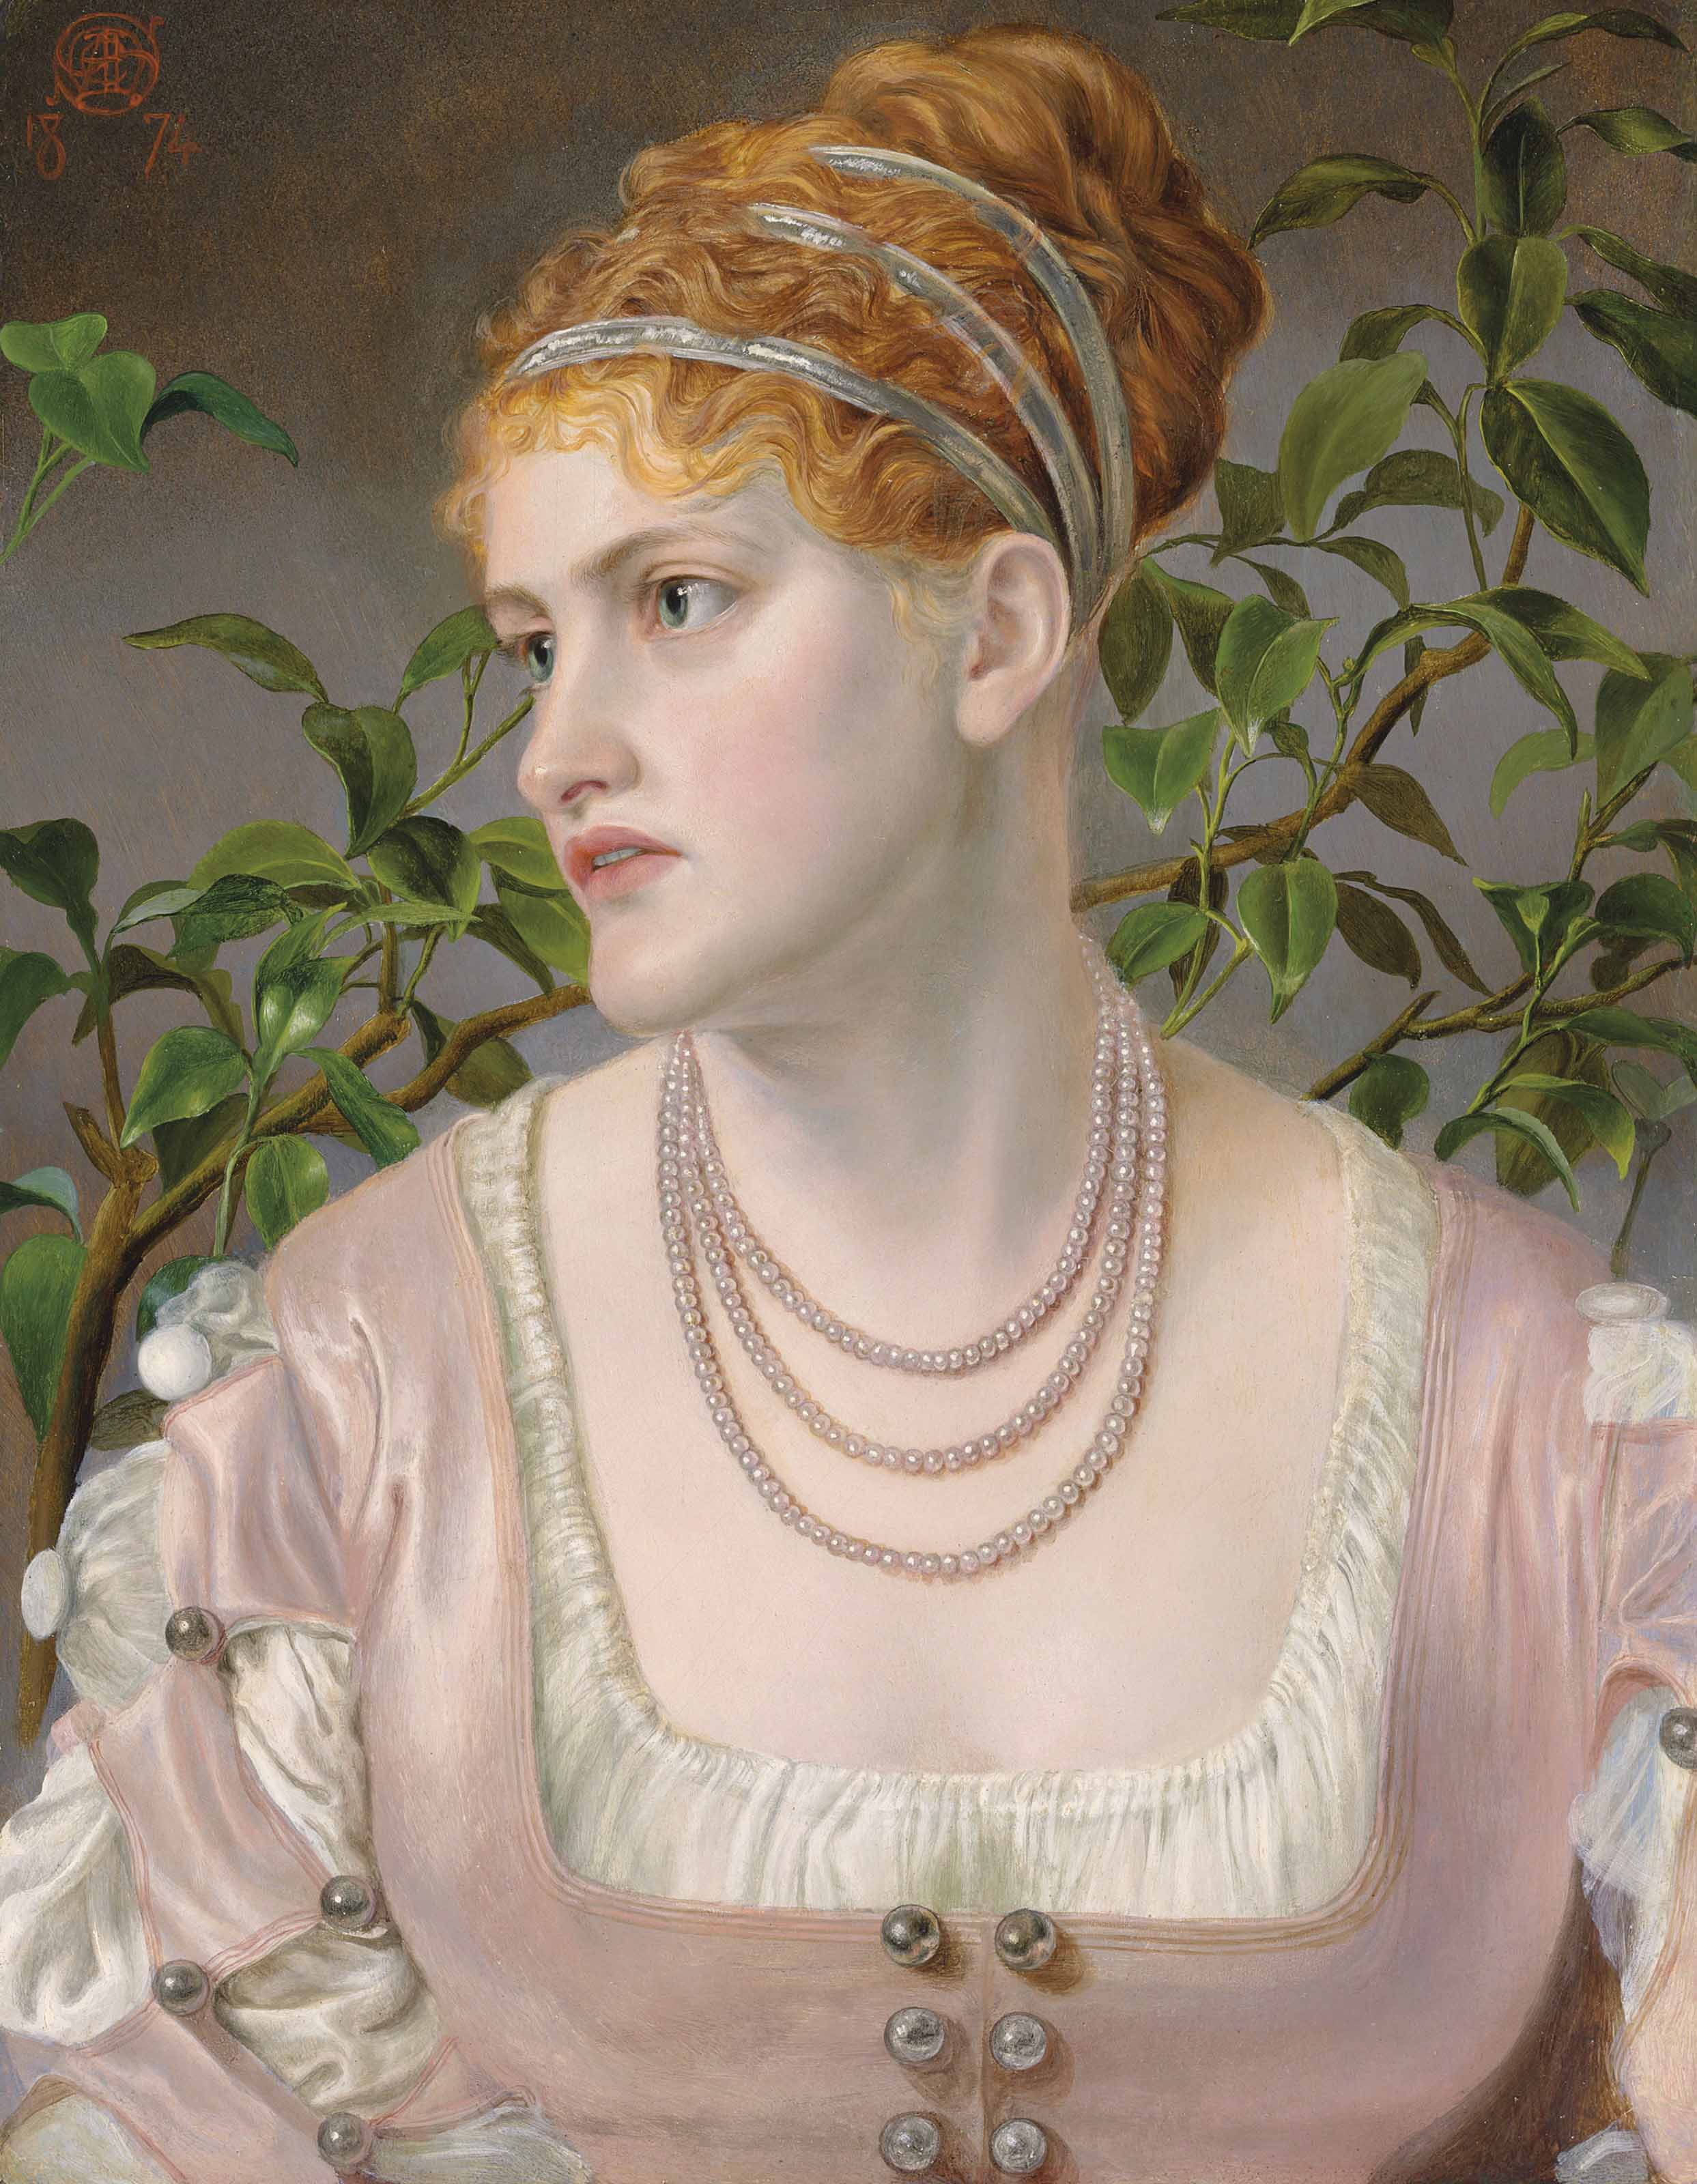 Portrait of Mary Emma Jones, bust-length, wearing a pearl necklace